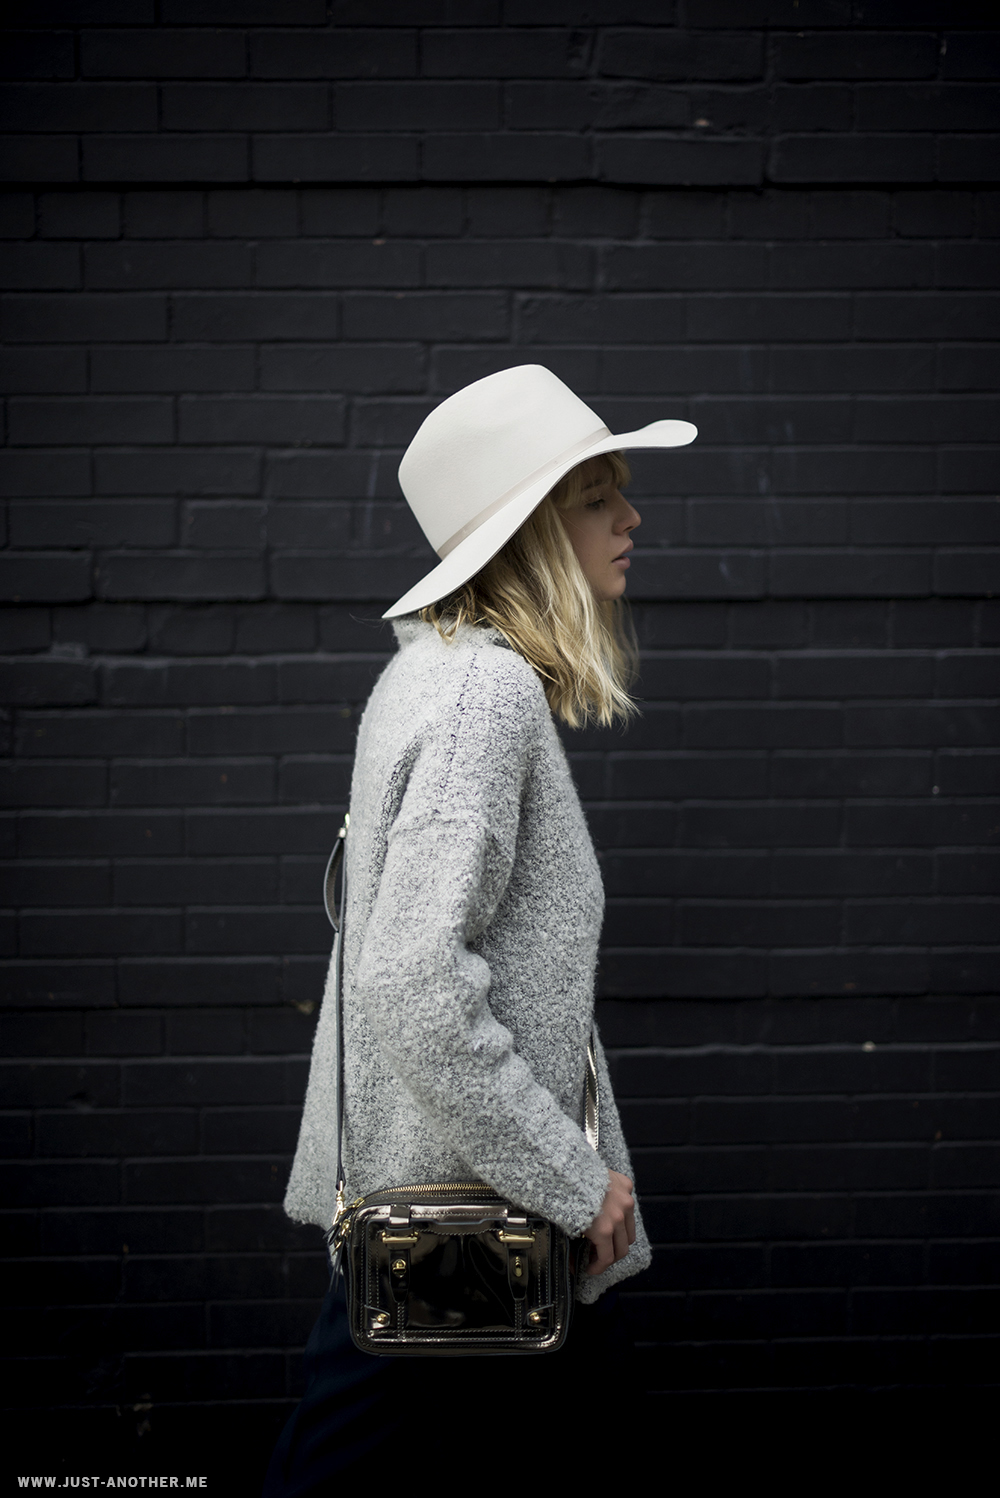 Lisa Dengler is wearing a white Alexis hat from Otte